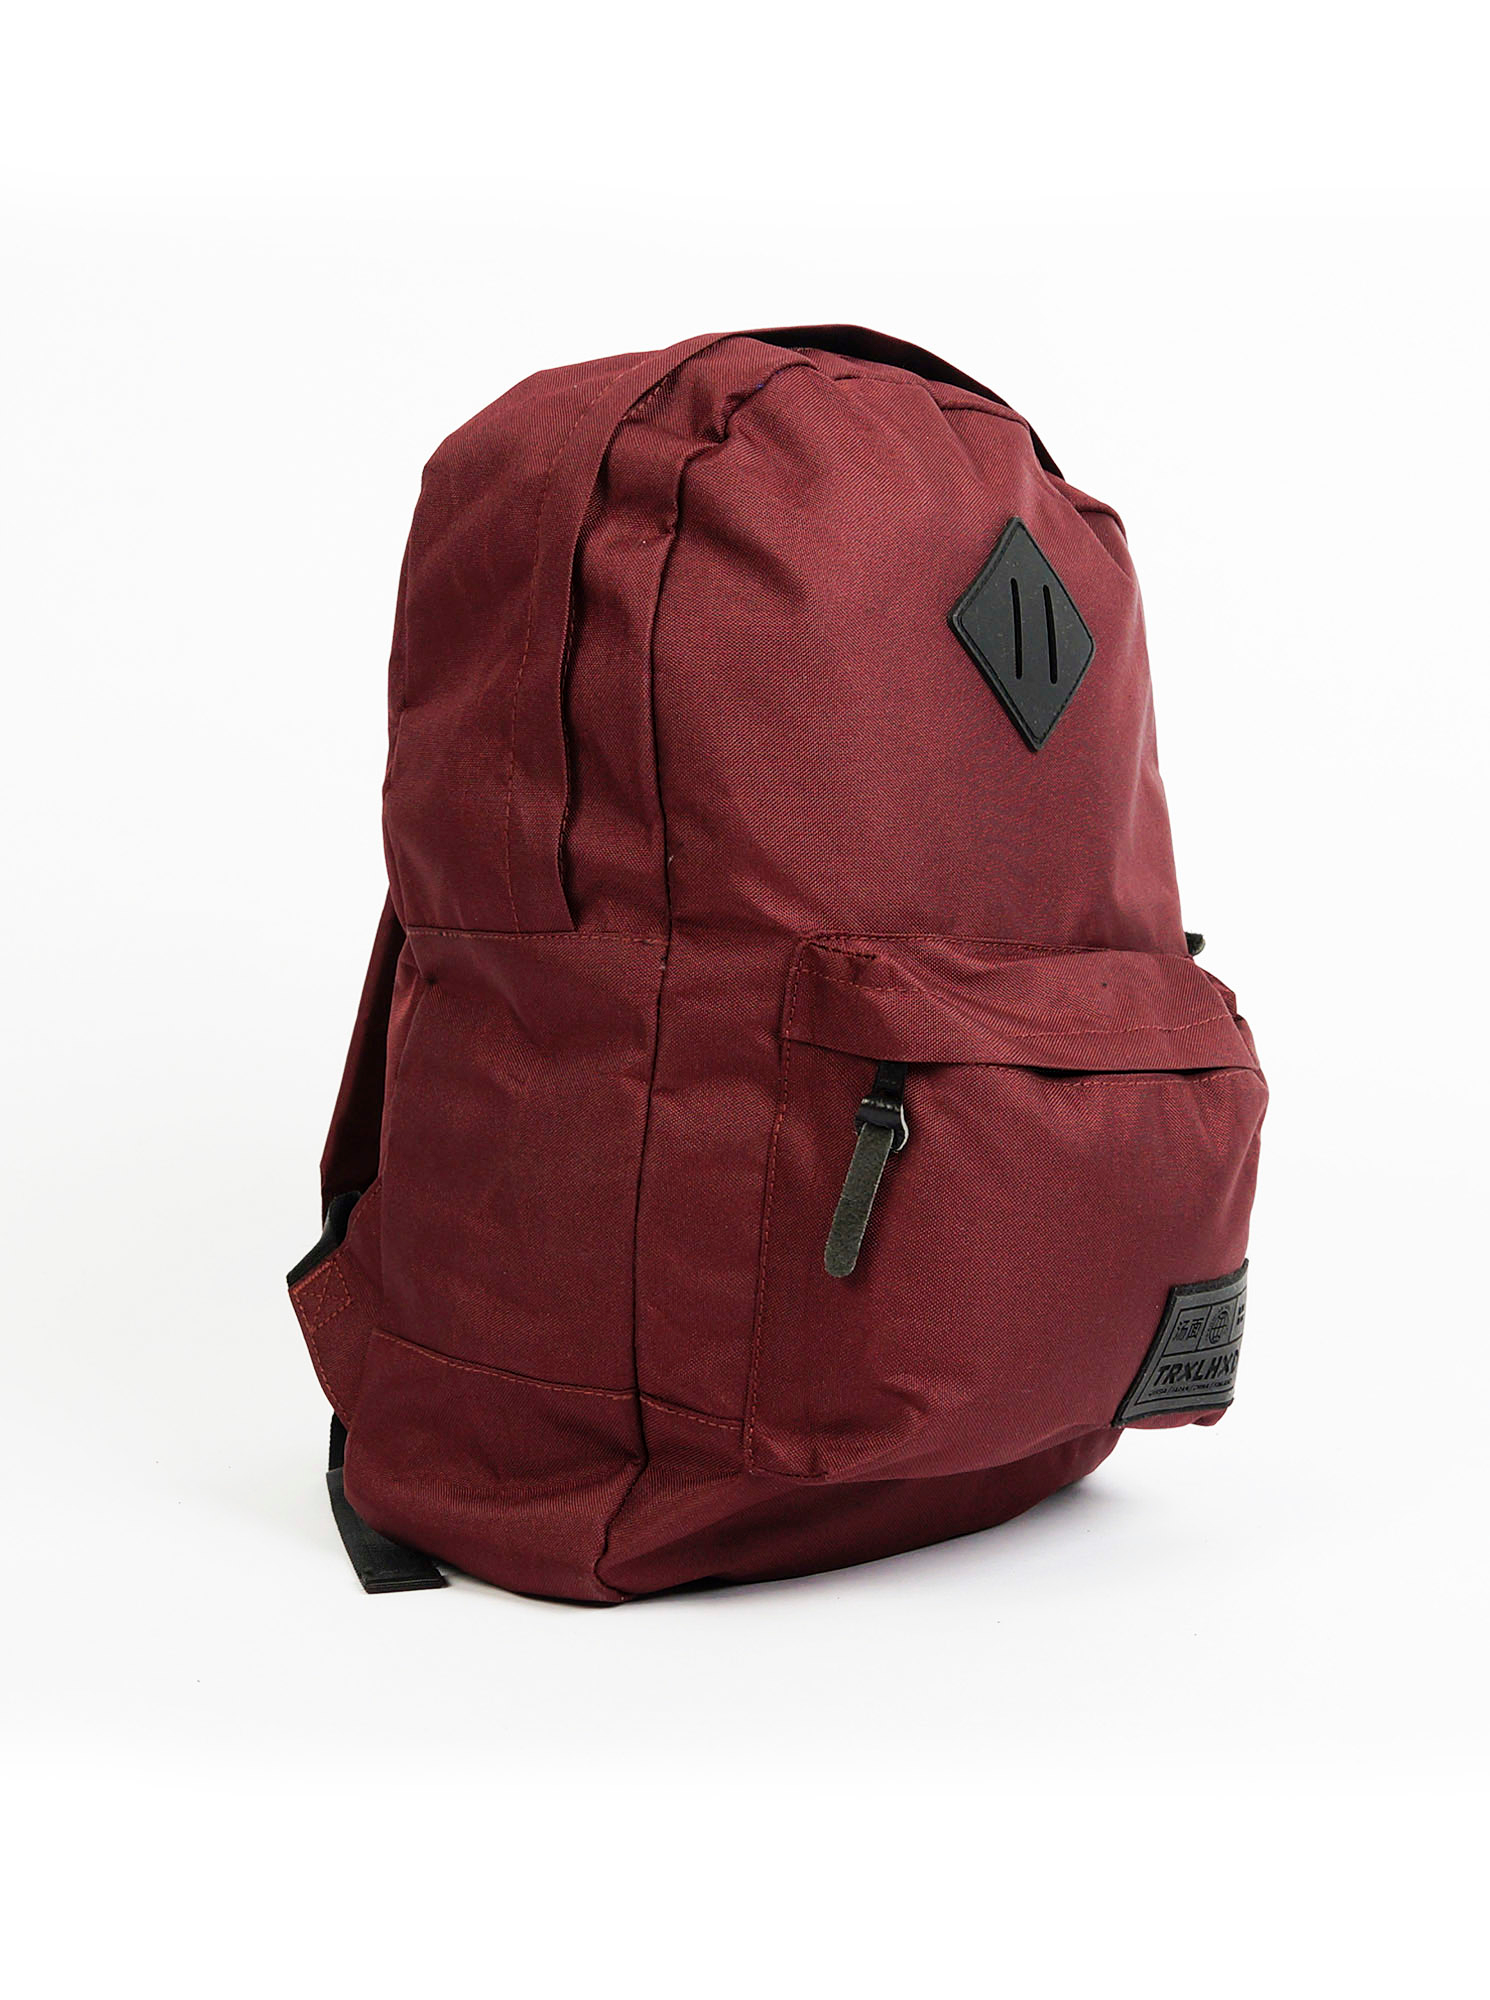 Рюкзак Trailhead BAG002-18 Бордовый, BAG002-18, фото 3